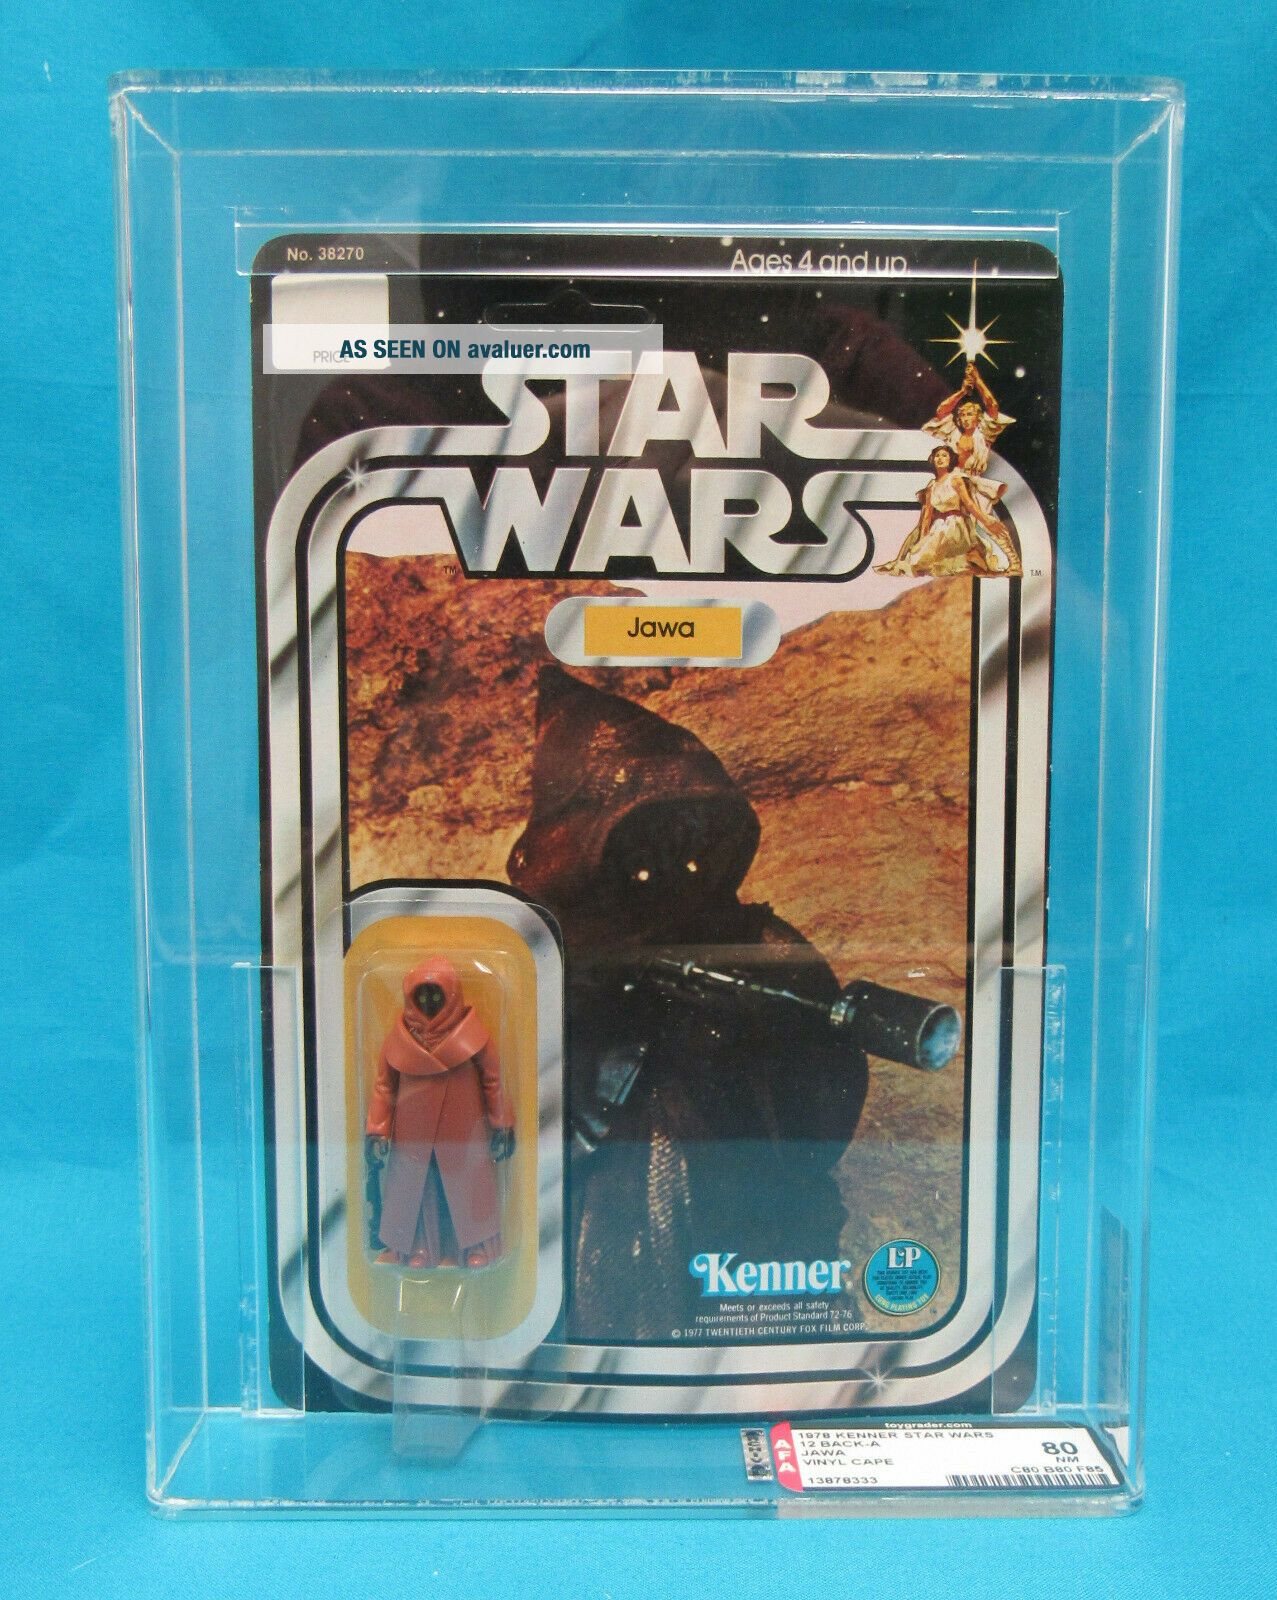 1978 Kenner Star Wars 12 Back - A Jawa Vinyl Cape AFA Graded 80 NM Unpunched Card